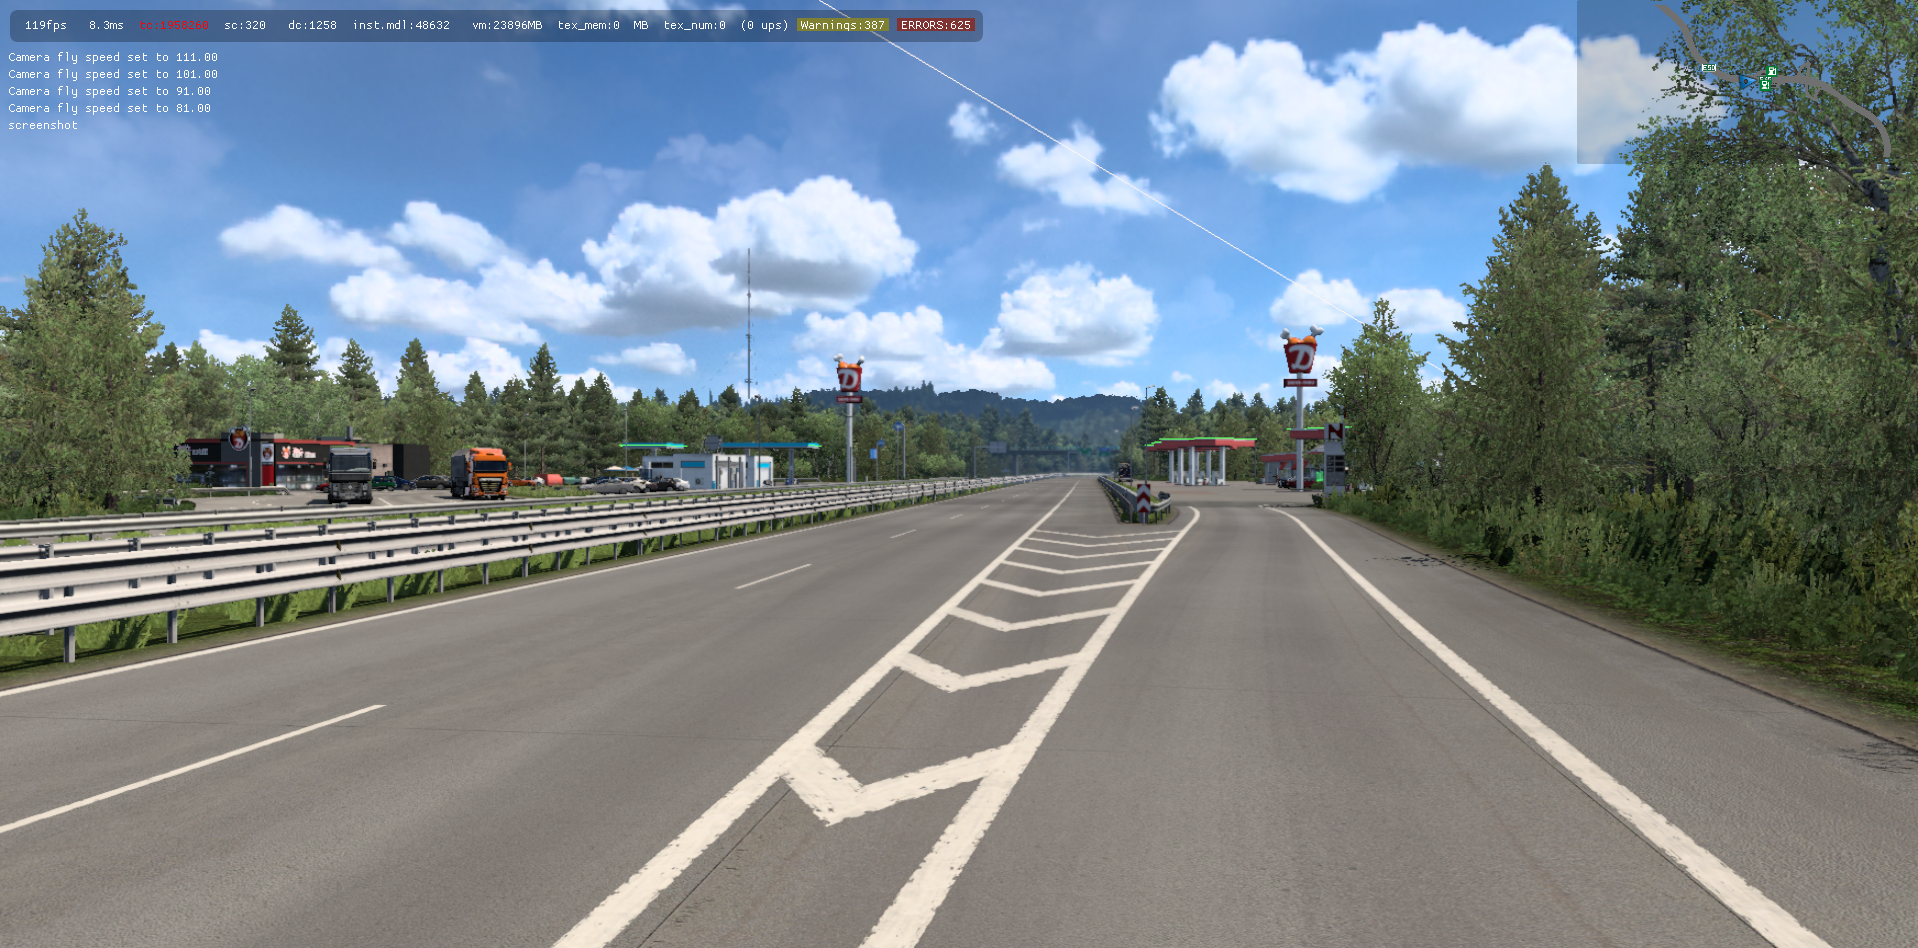 ets2_20210729_231411_00.png